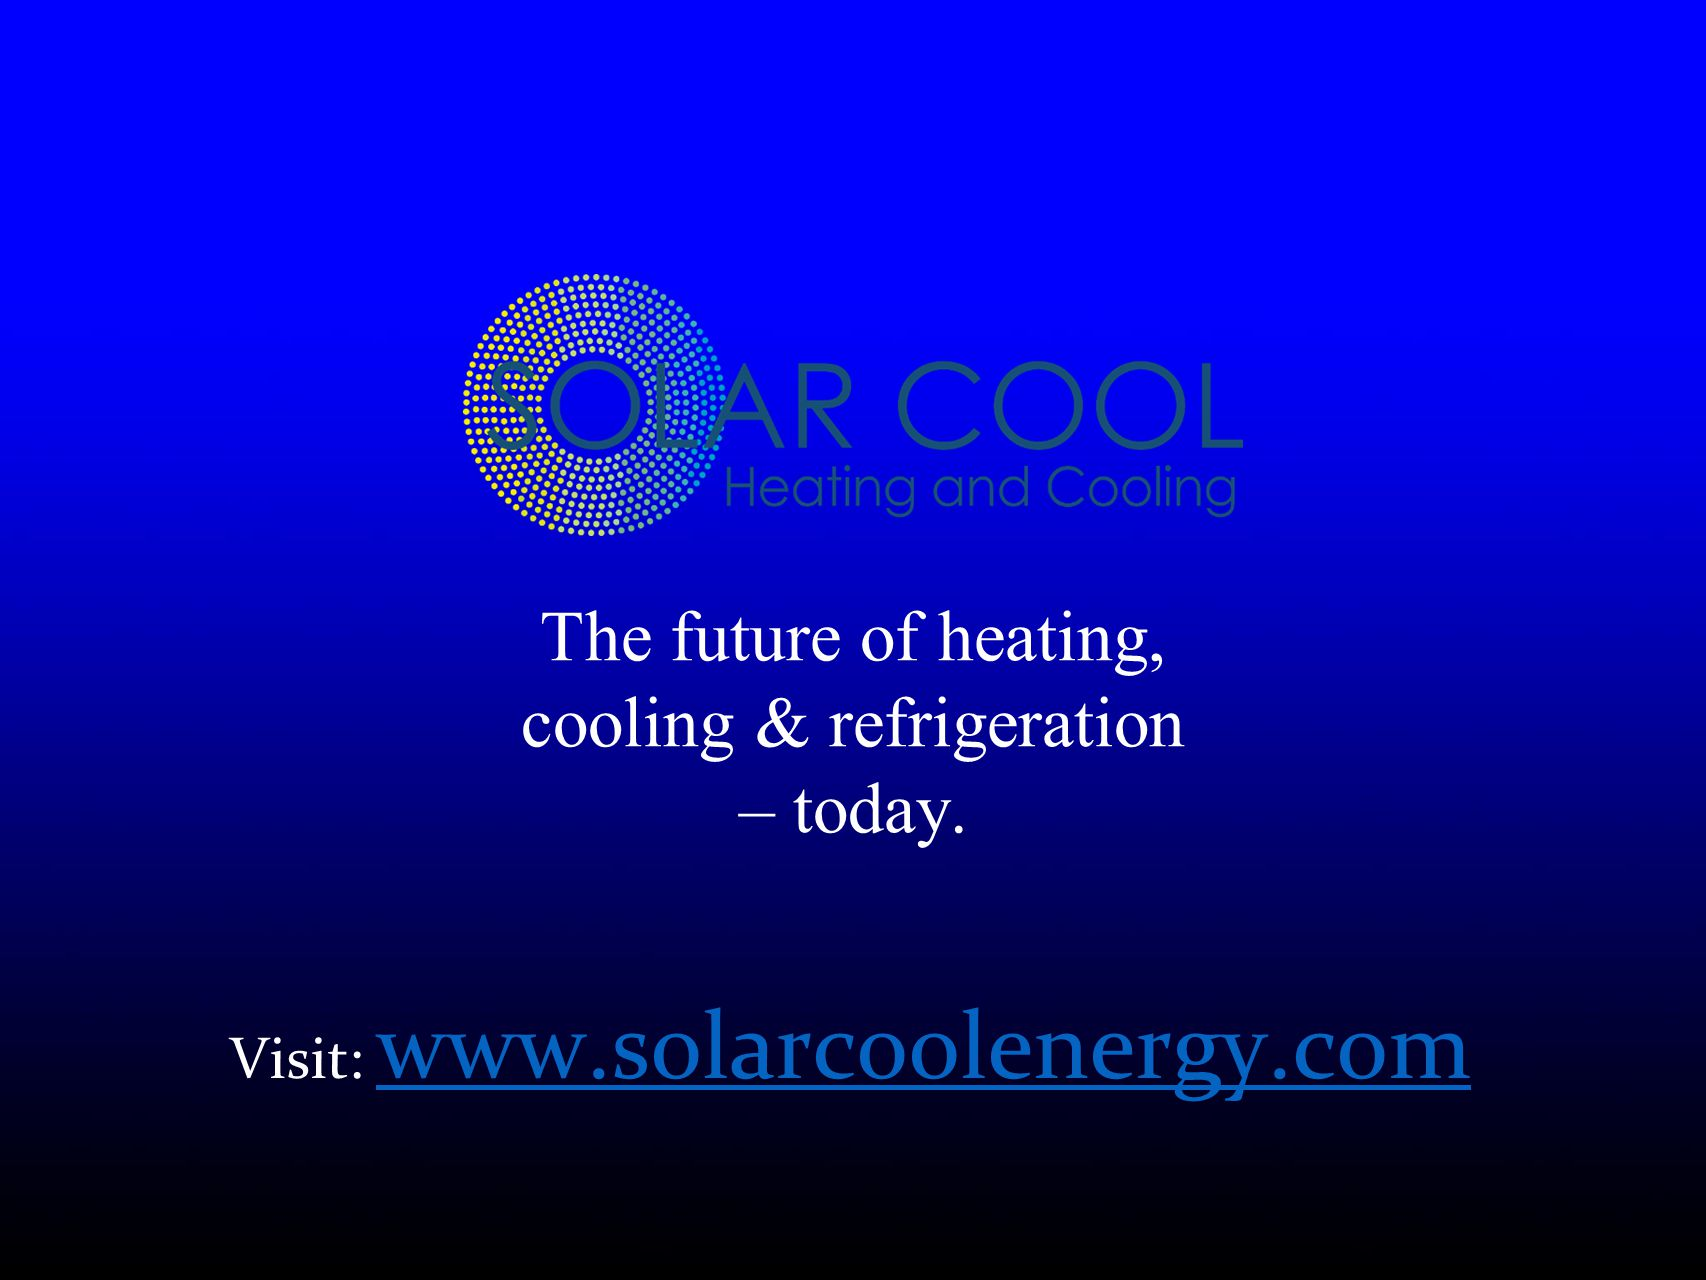 The future of heating, cooling & refrigeration – today.